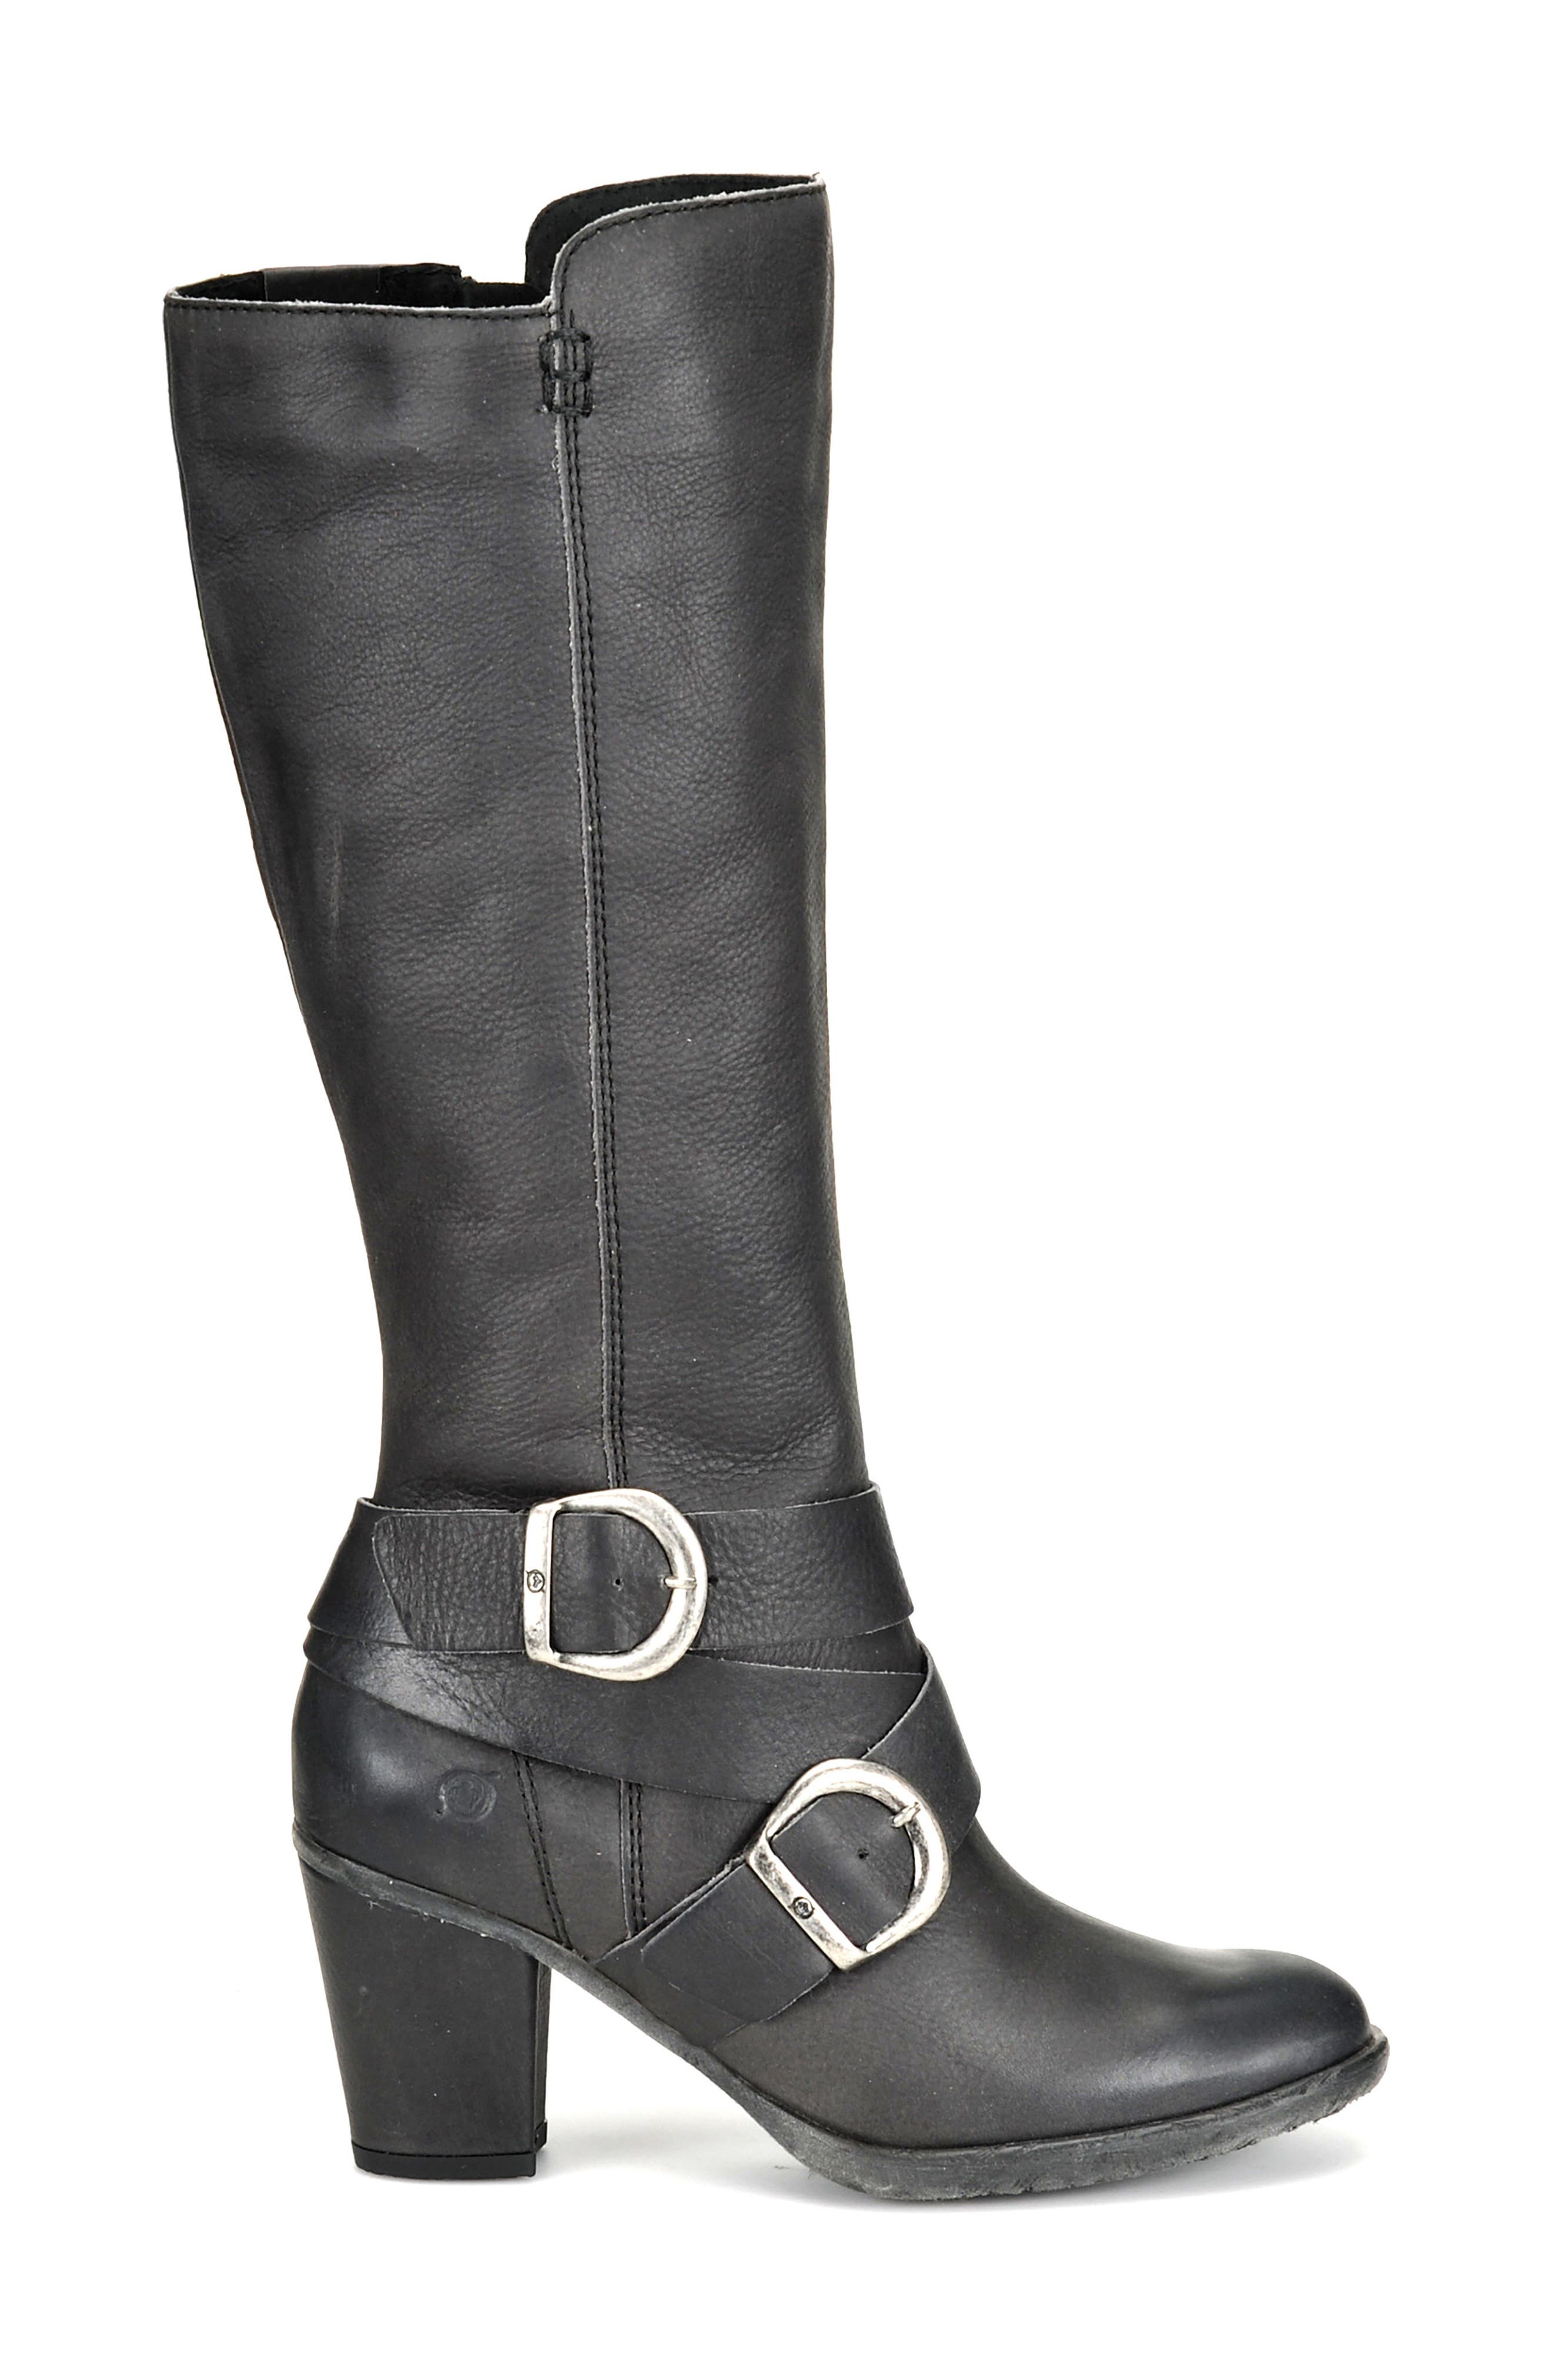 Cresent Knee High Boot,                             Alternate thumbnail 3, color,                             Dark Grey Leather